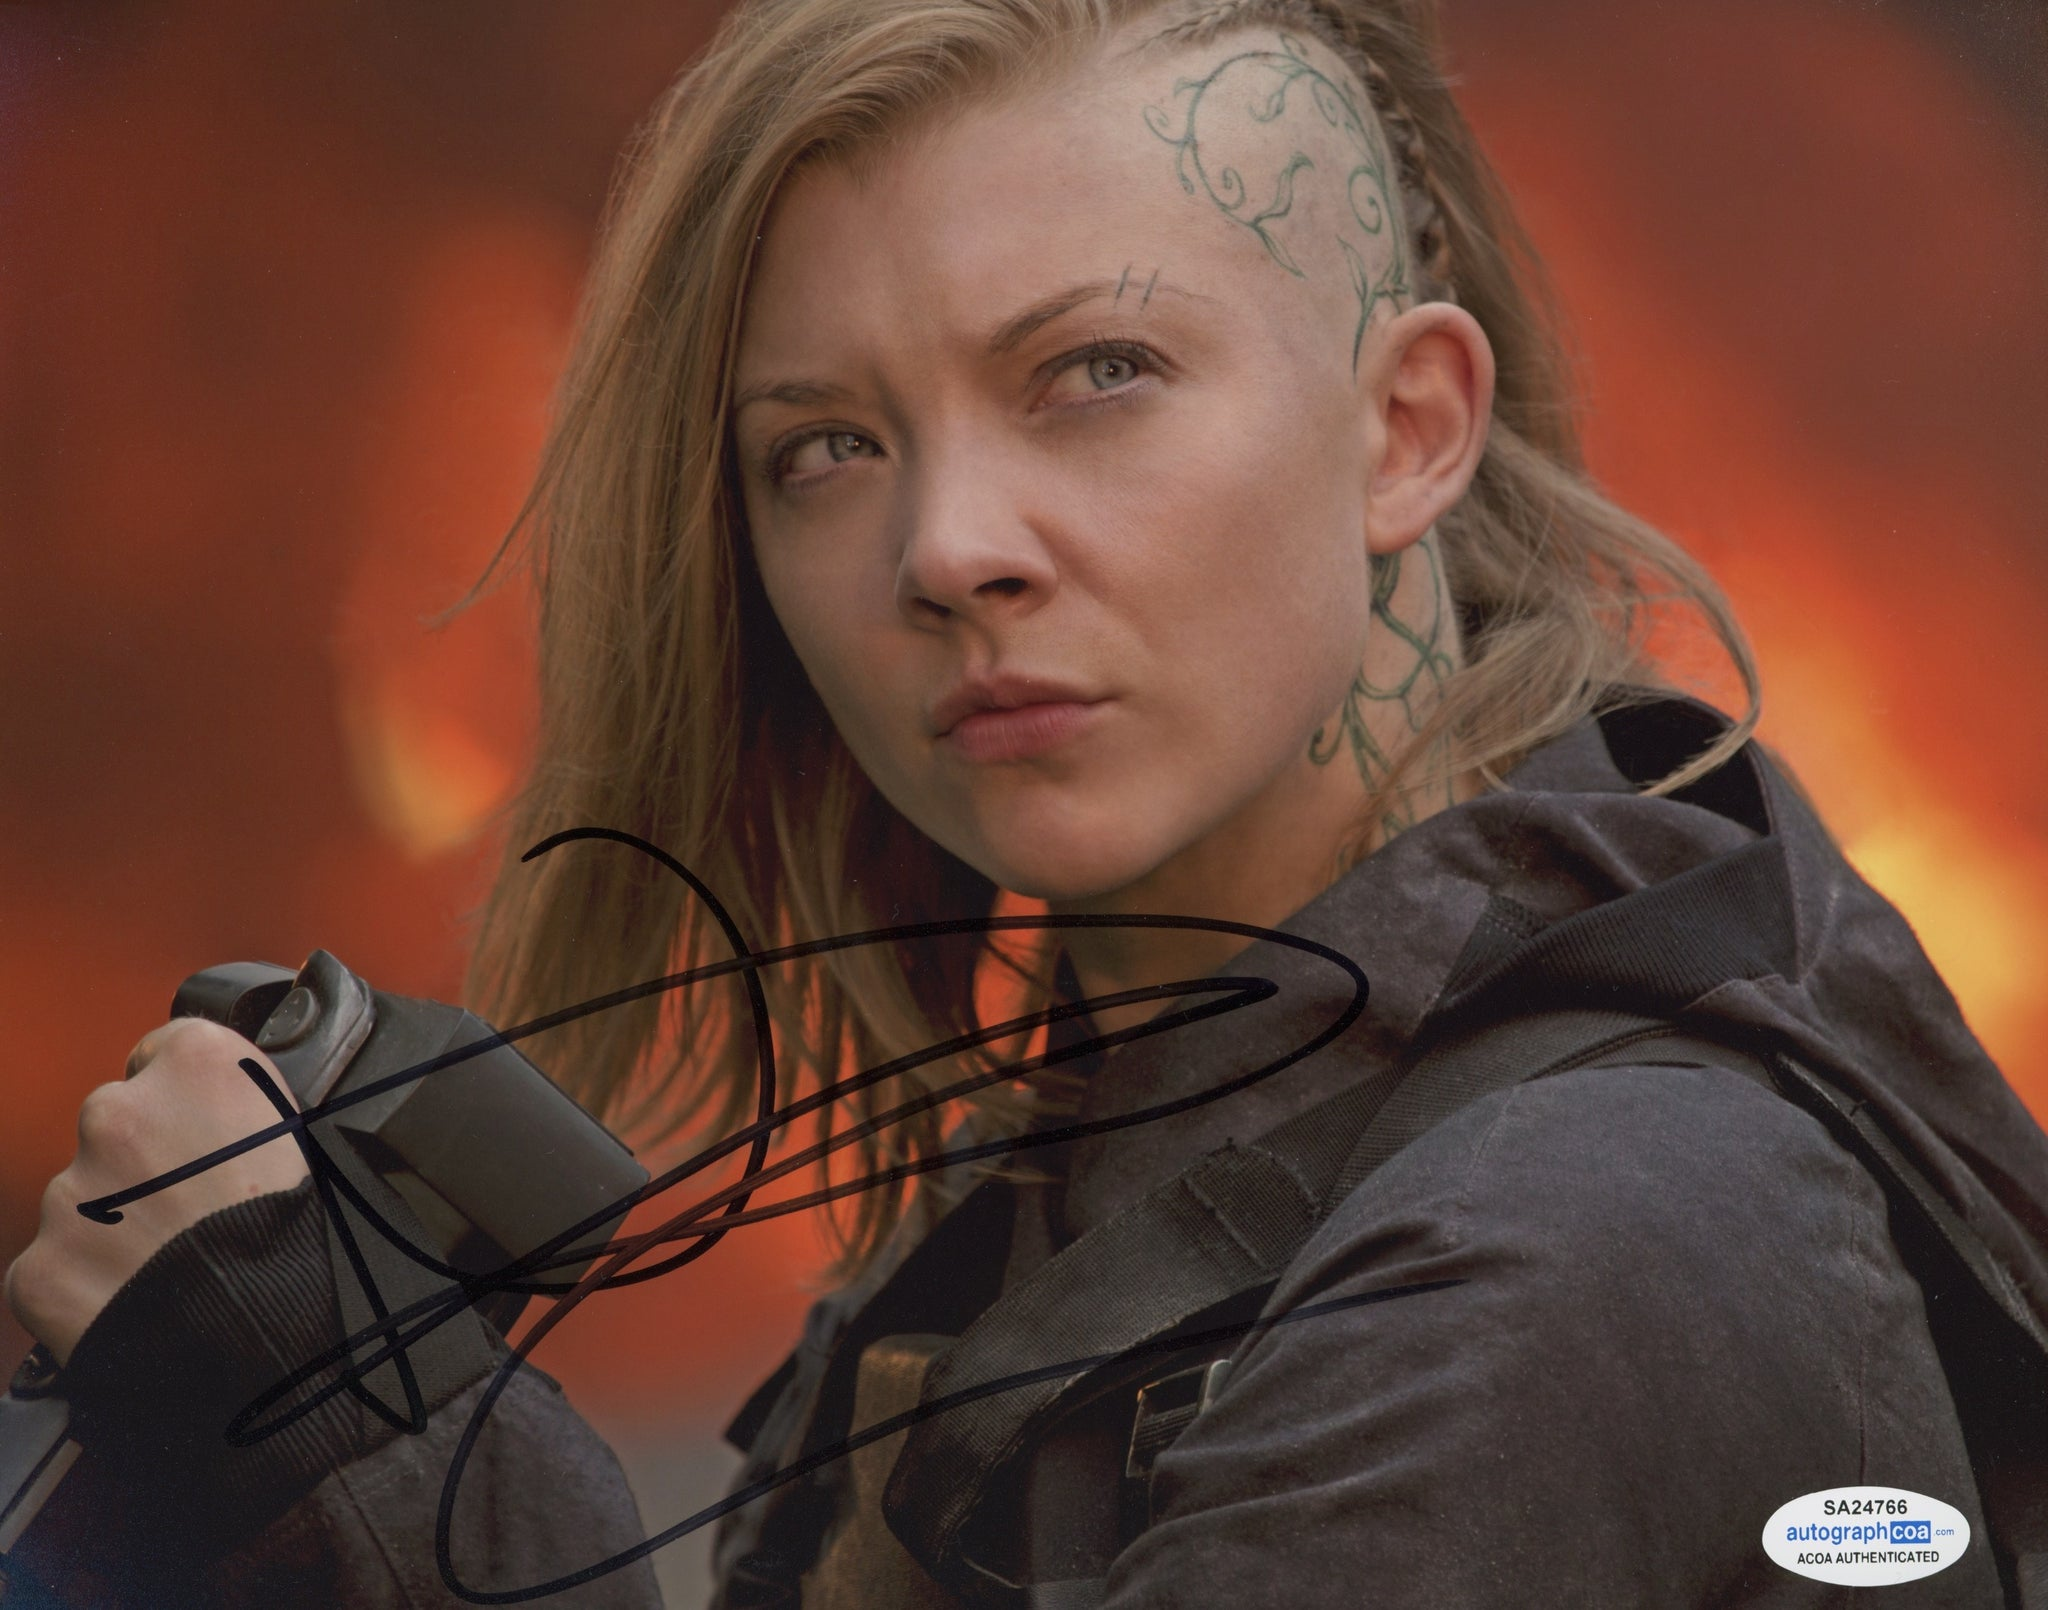 Natalie Dormer Sexy Signed Autograph 8x10 Photo #15 - Outlaw Hobbies Authentic Autographs